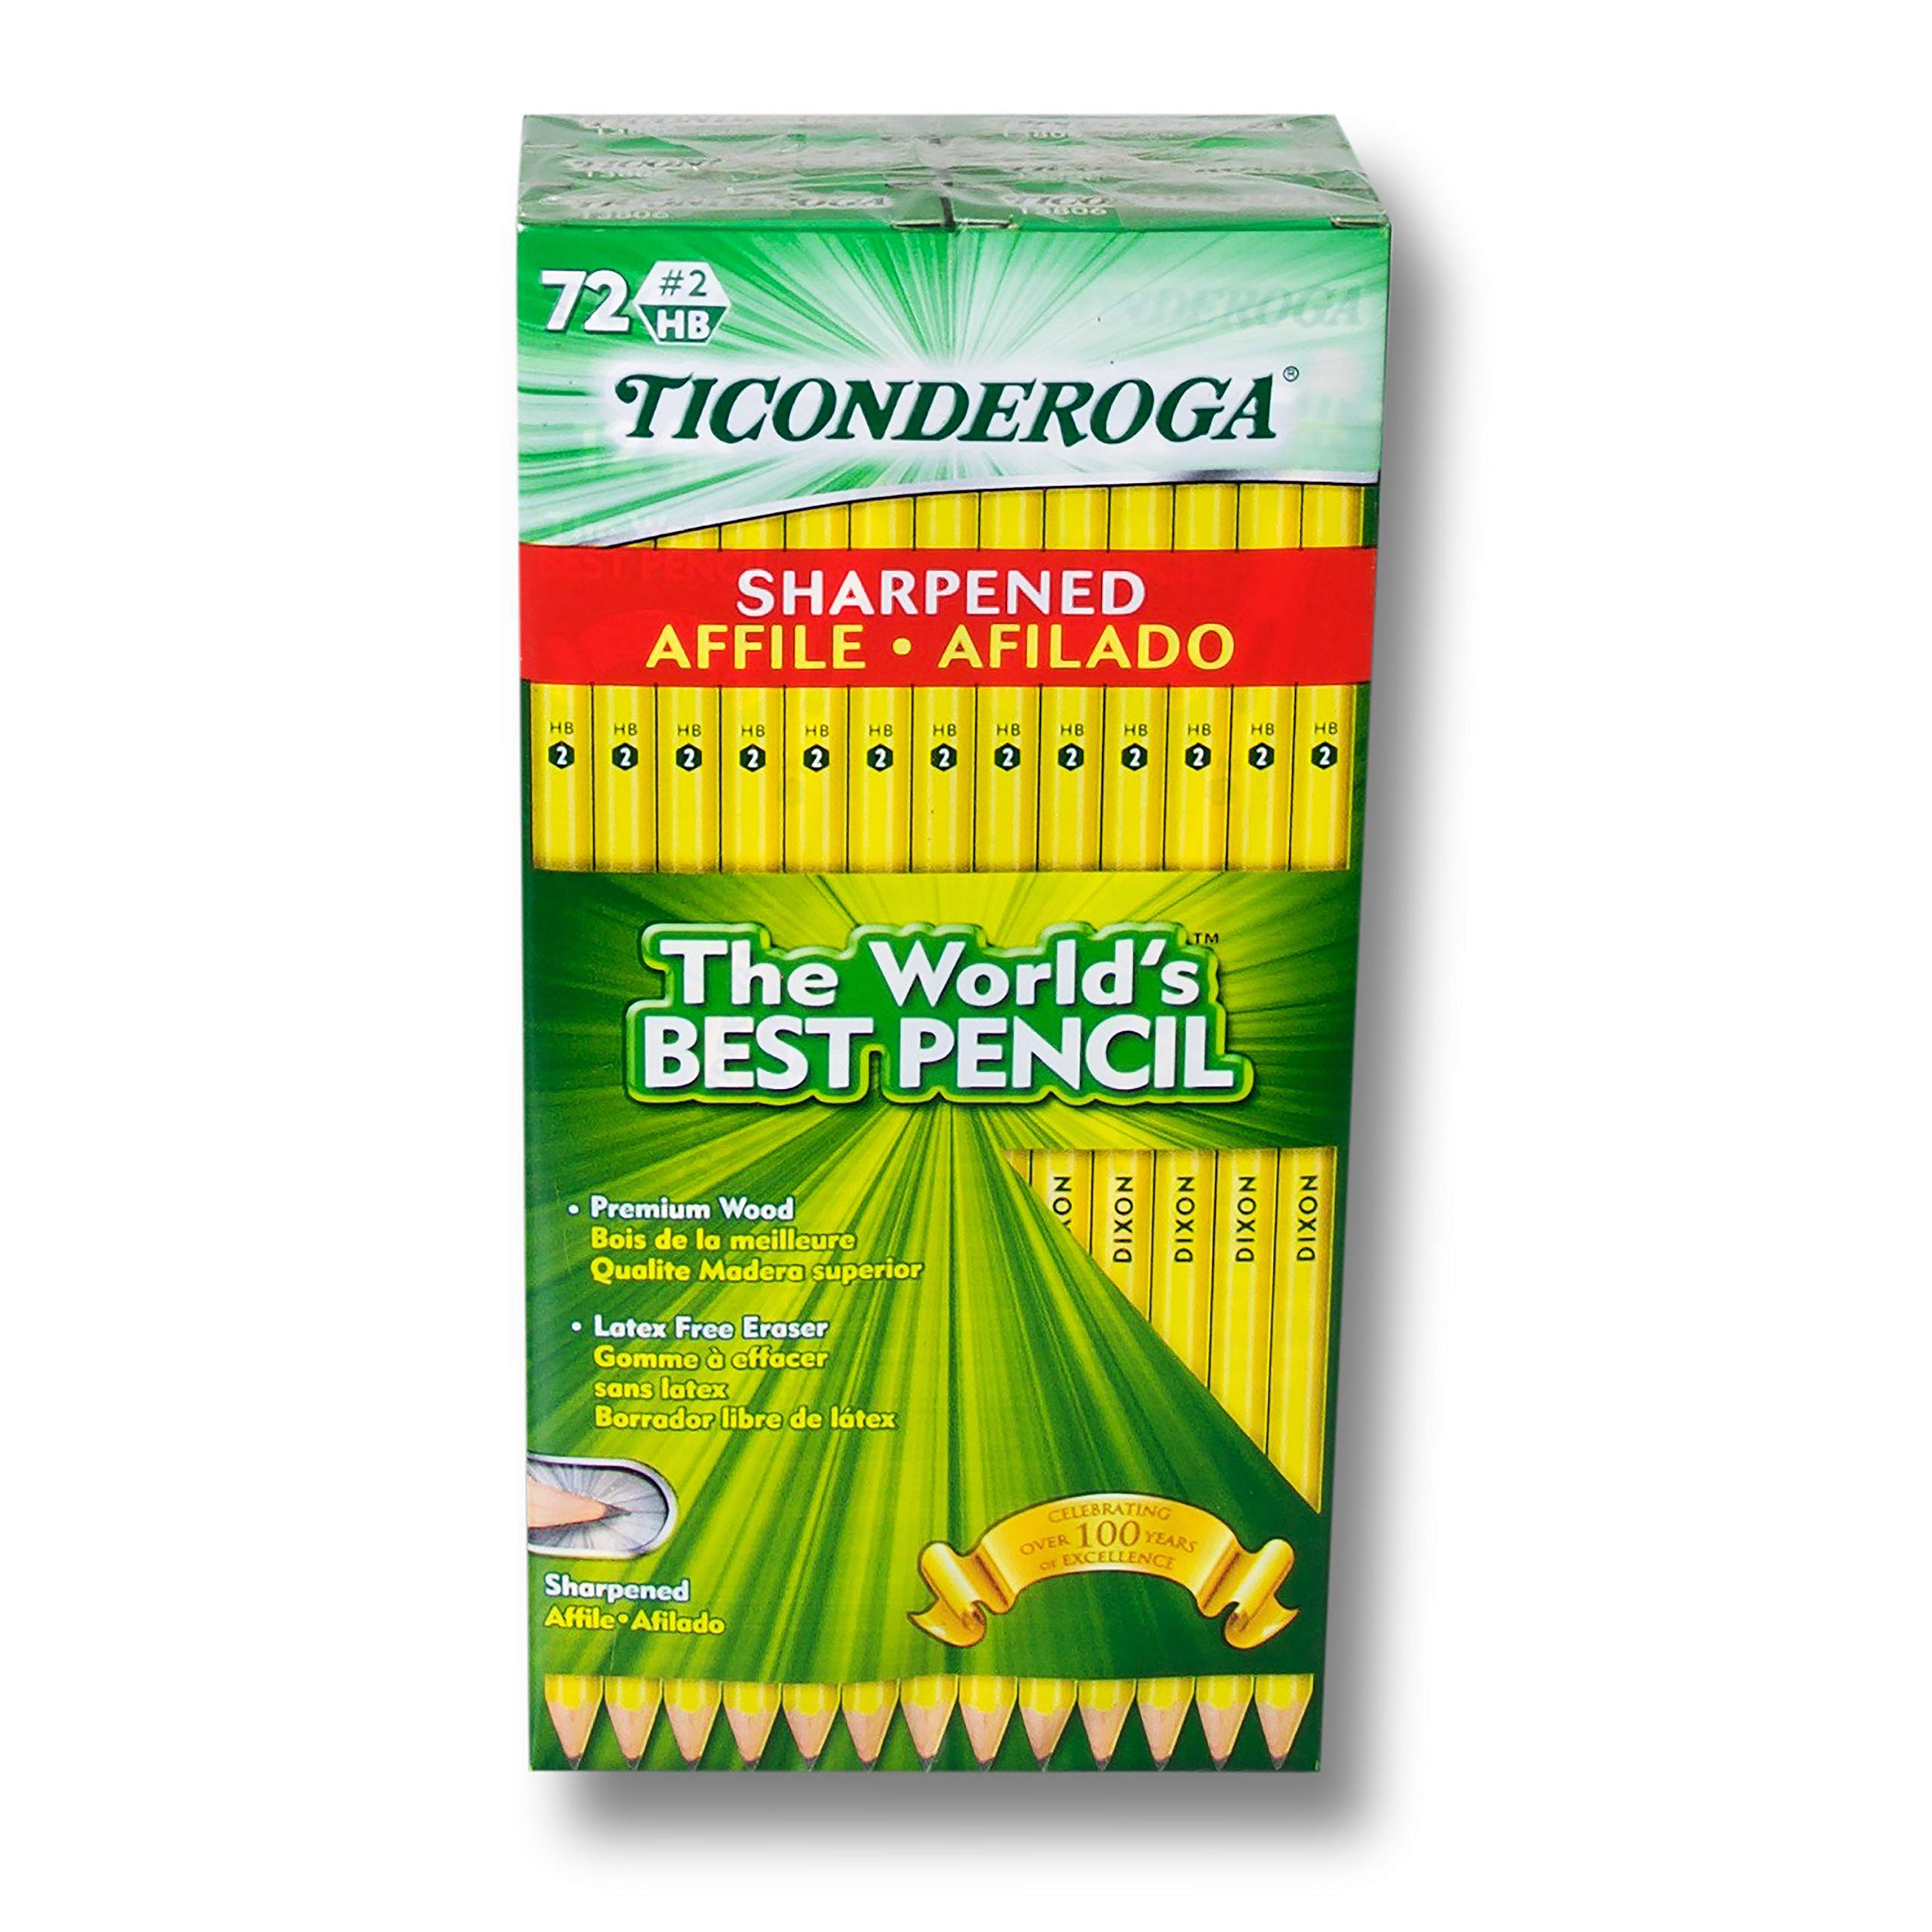 Ticonderoga Pre-Sharpened #2 Pencil with Eraser, Pack of 72 by Ticonderoga (Image #2)